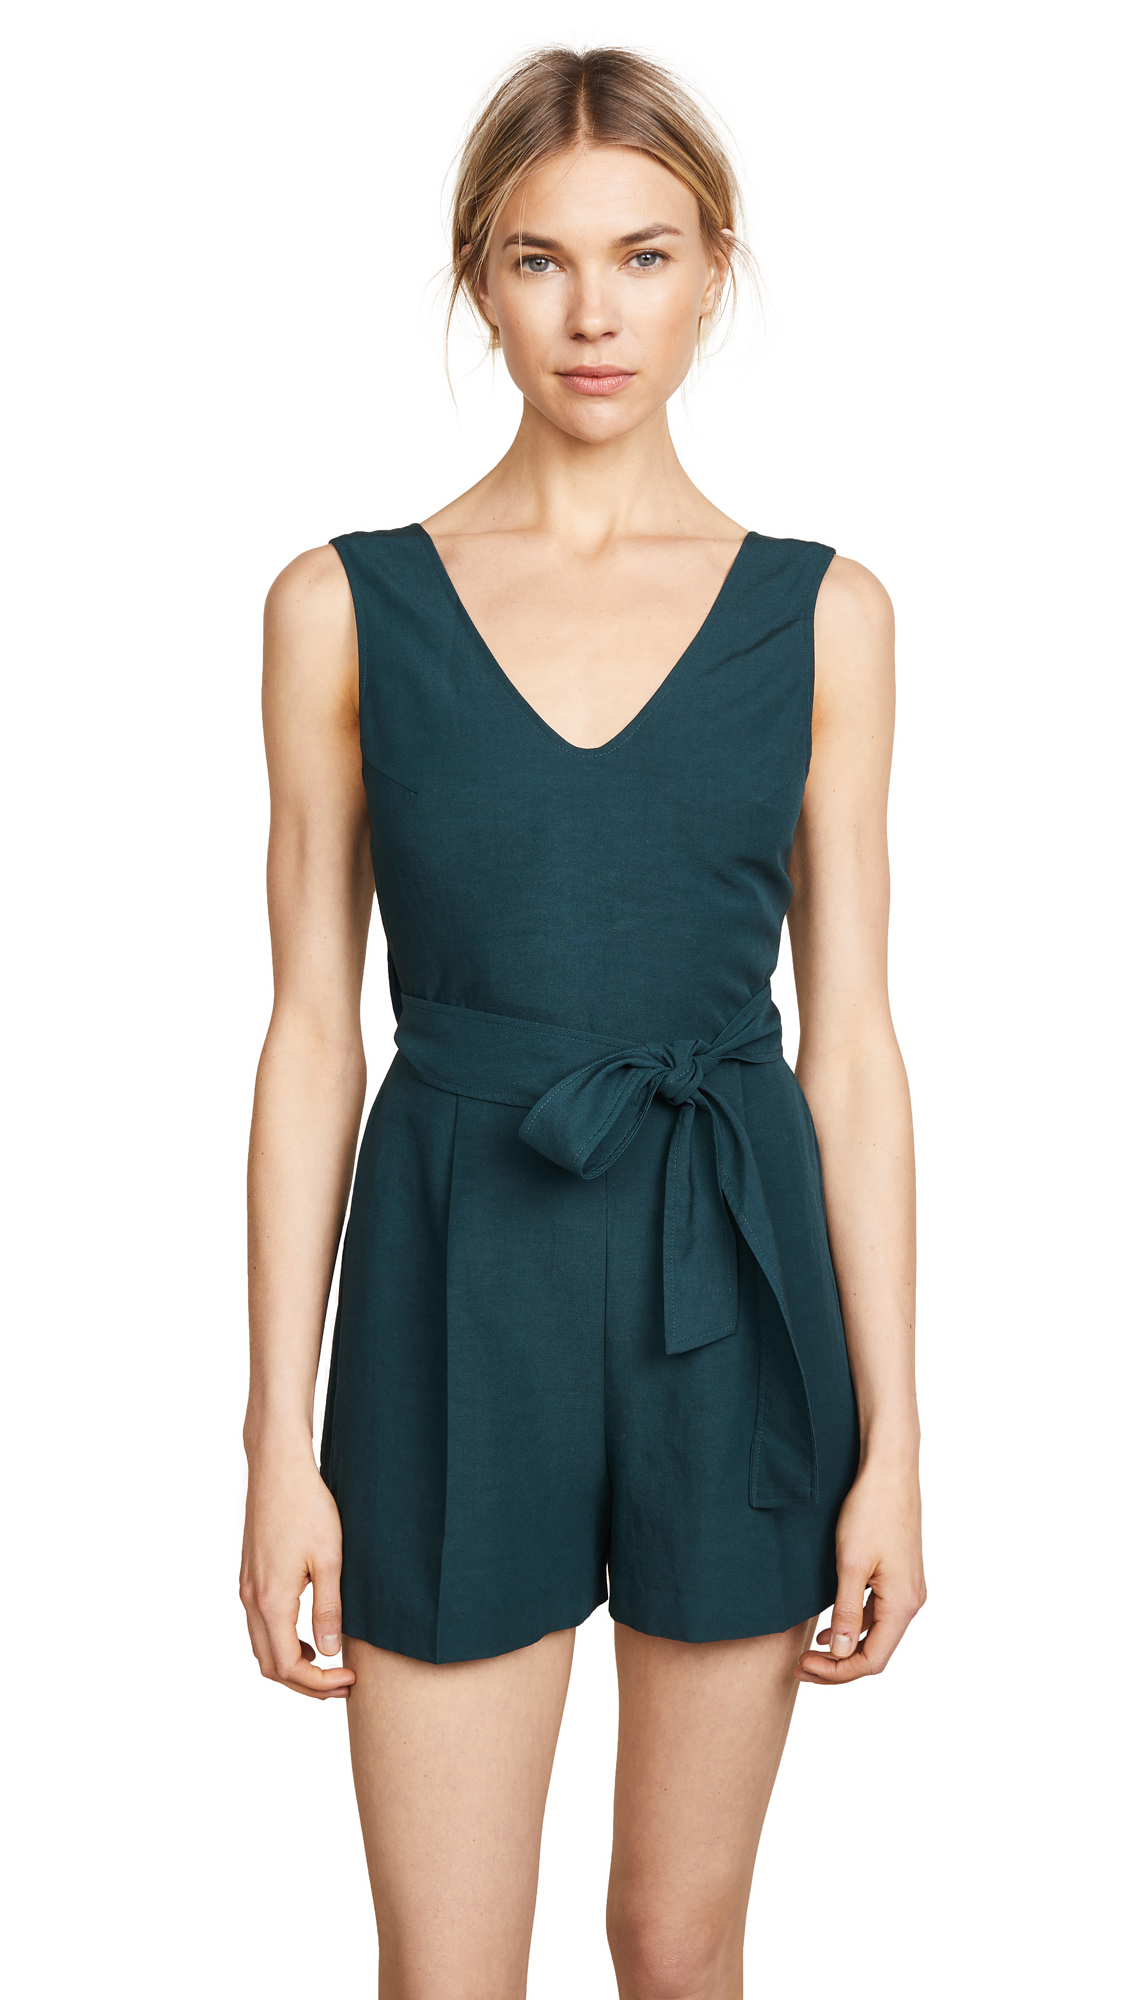 Club Monaco Madria Romper In Palm Green